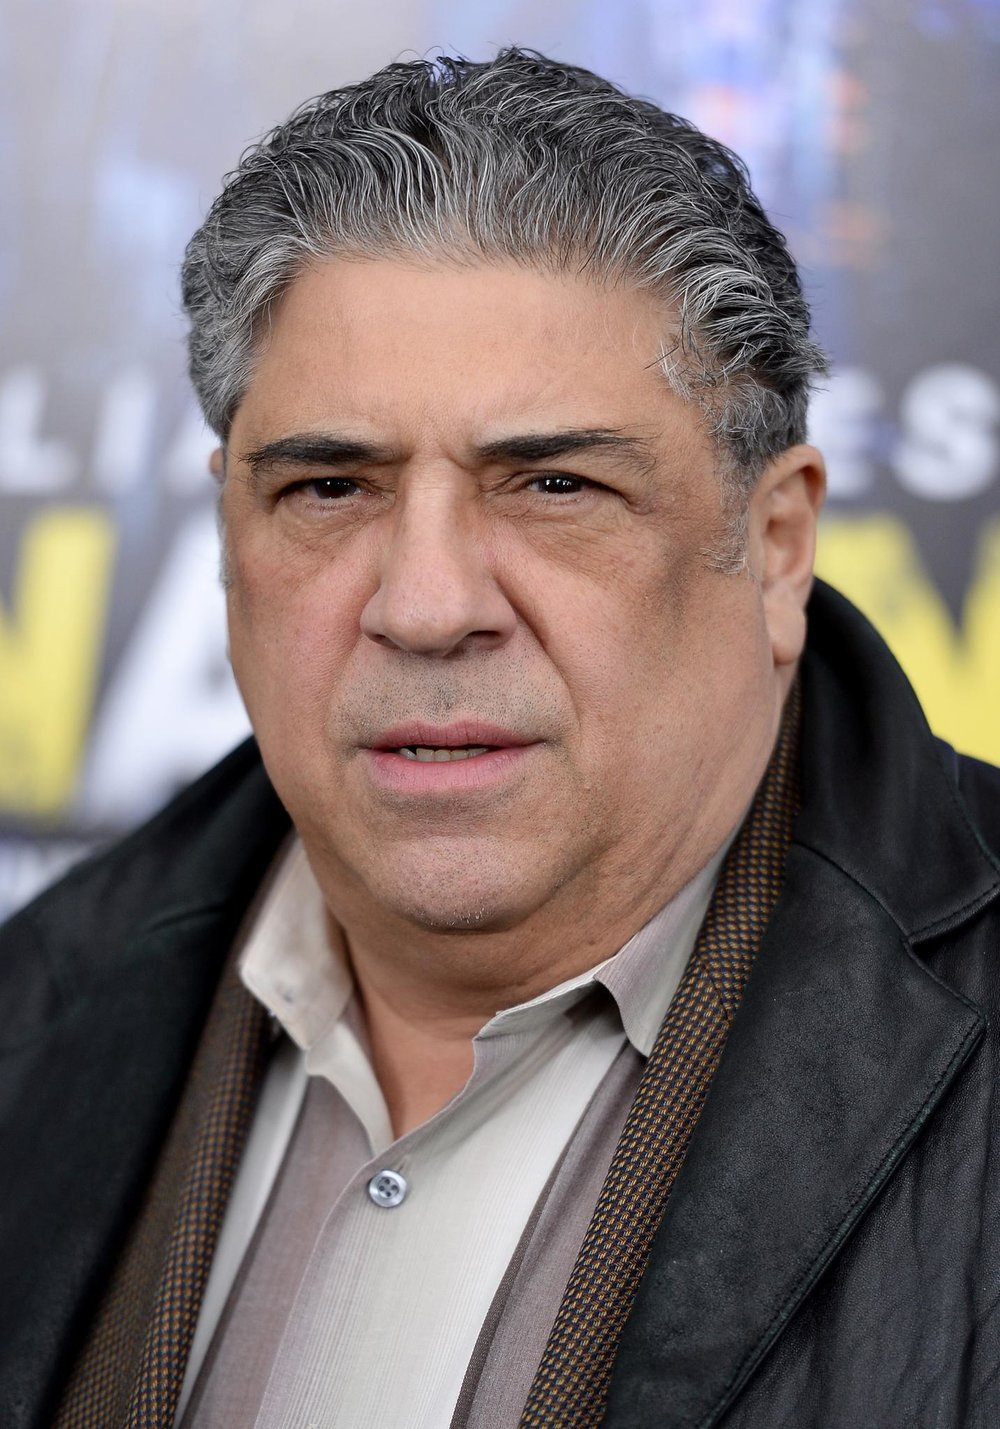 Vincent Pastore – passenger in a vehicle   Vincent Pastore was born on July 14, 1946 in Bronx, New York, USA. He is an actor and producer, known for The Sopranos (1999), Revolver (2005) and Shark Tale (2004).